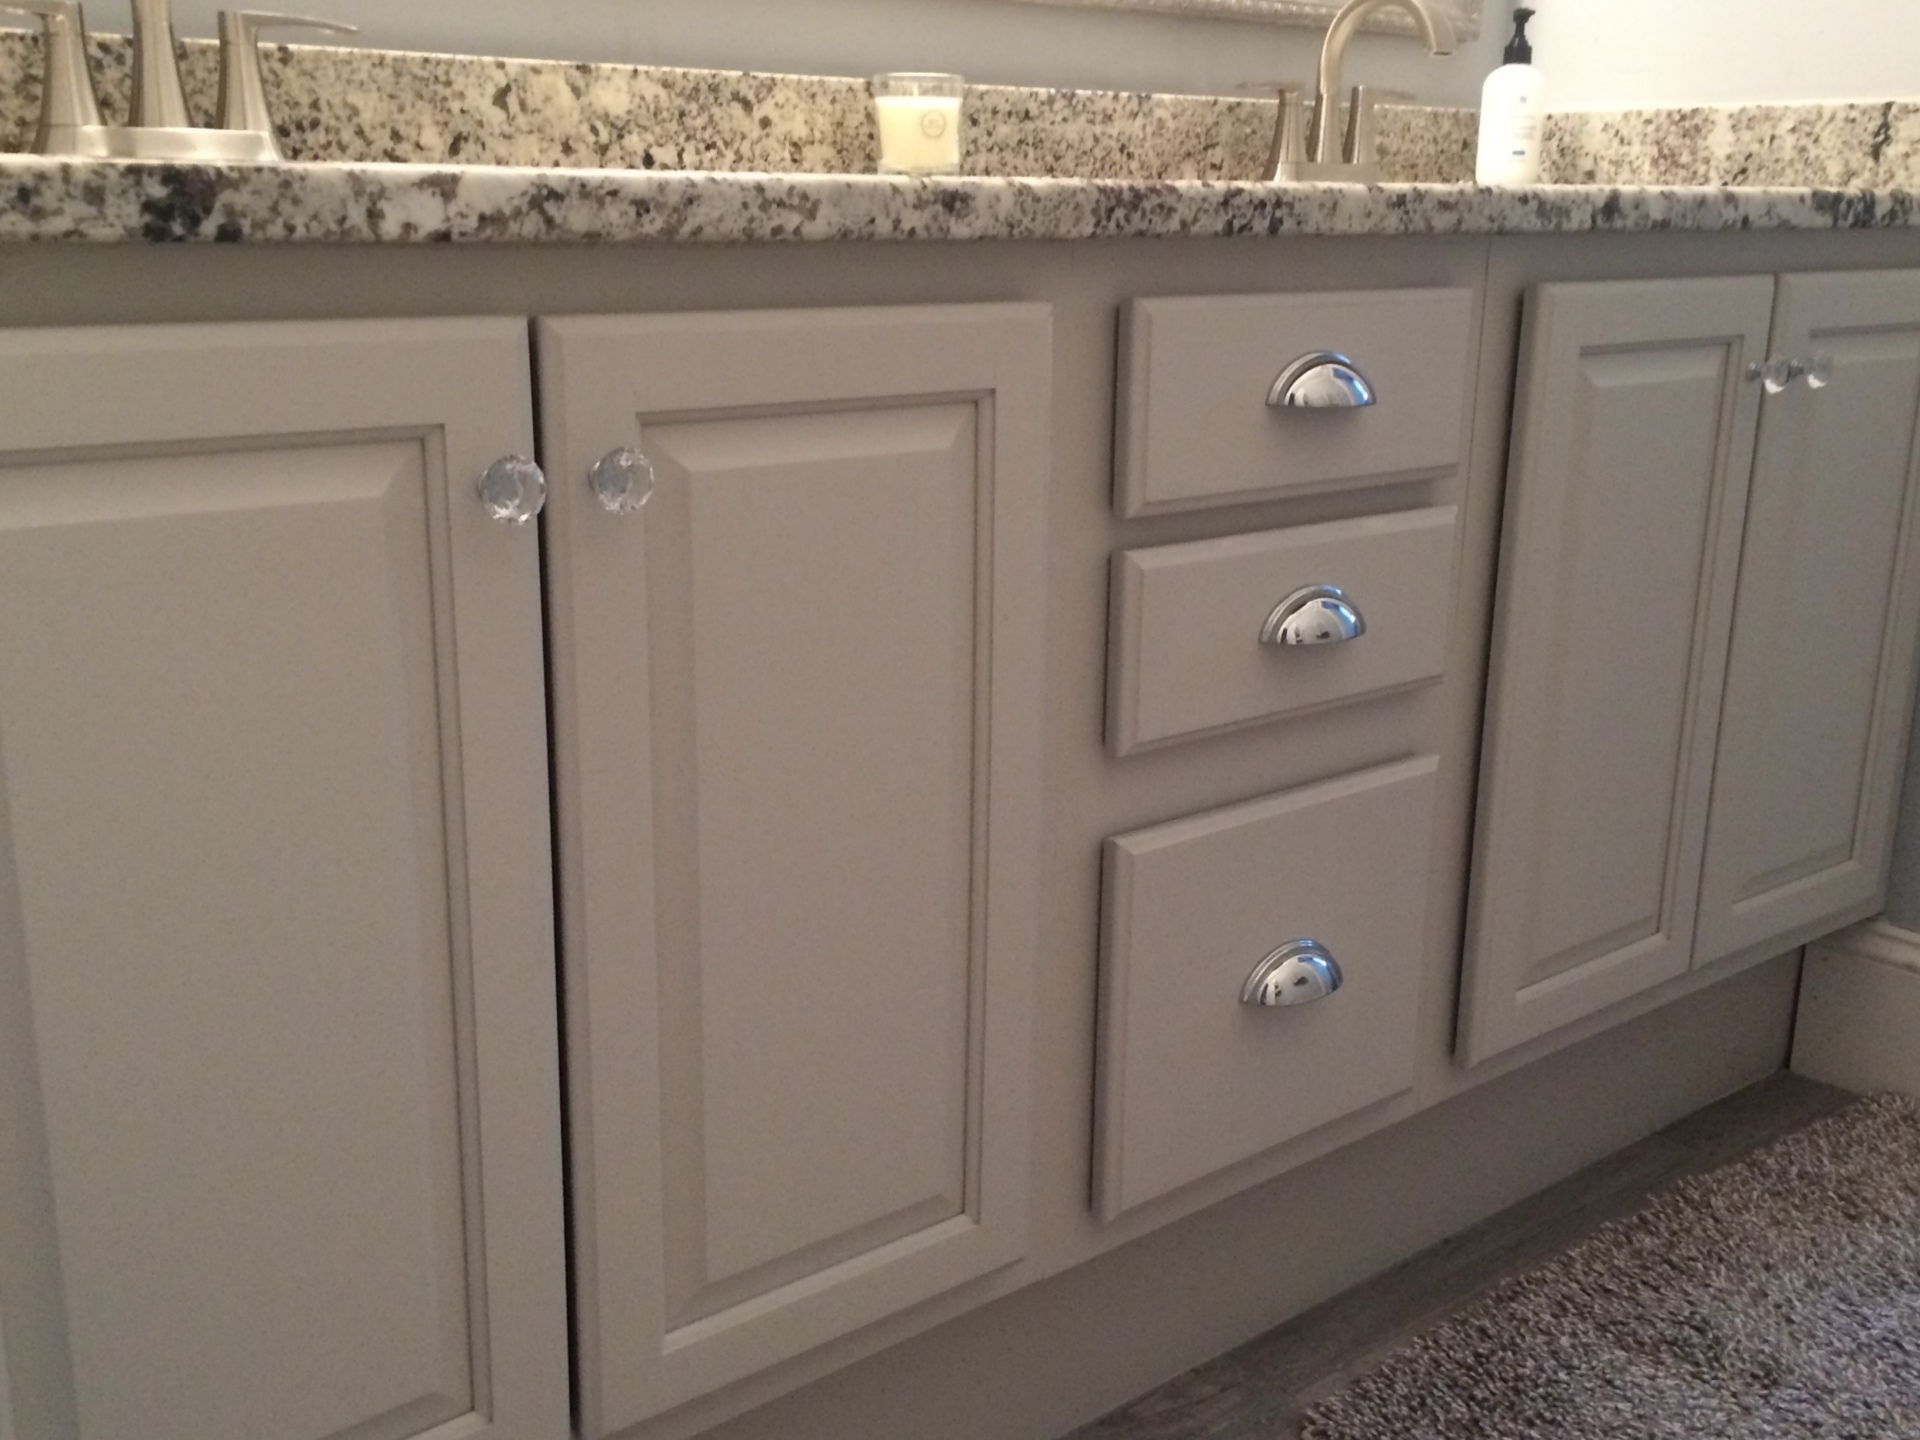 agreeable gray bathroom vanity beyond north hills raleigh fabulous finishes by michelle deep river mercantile